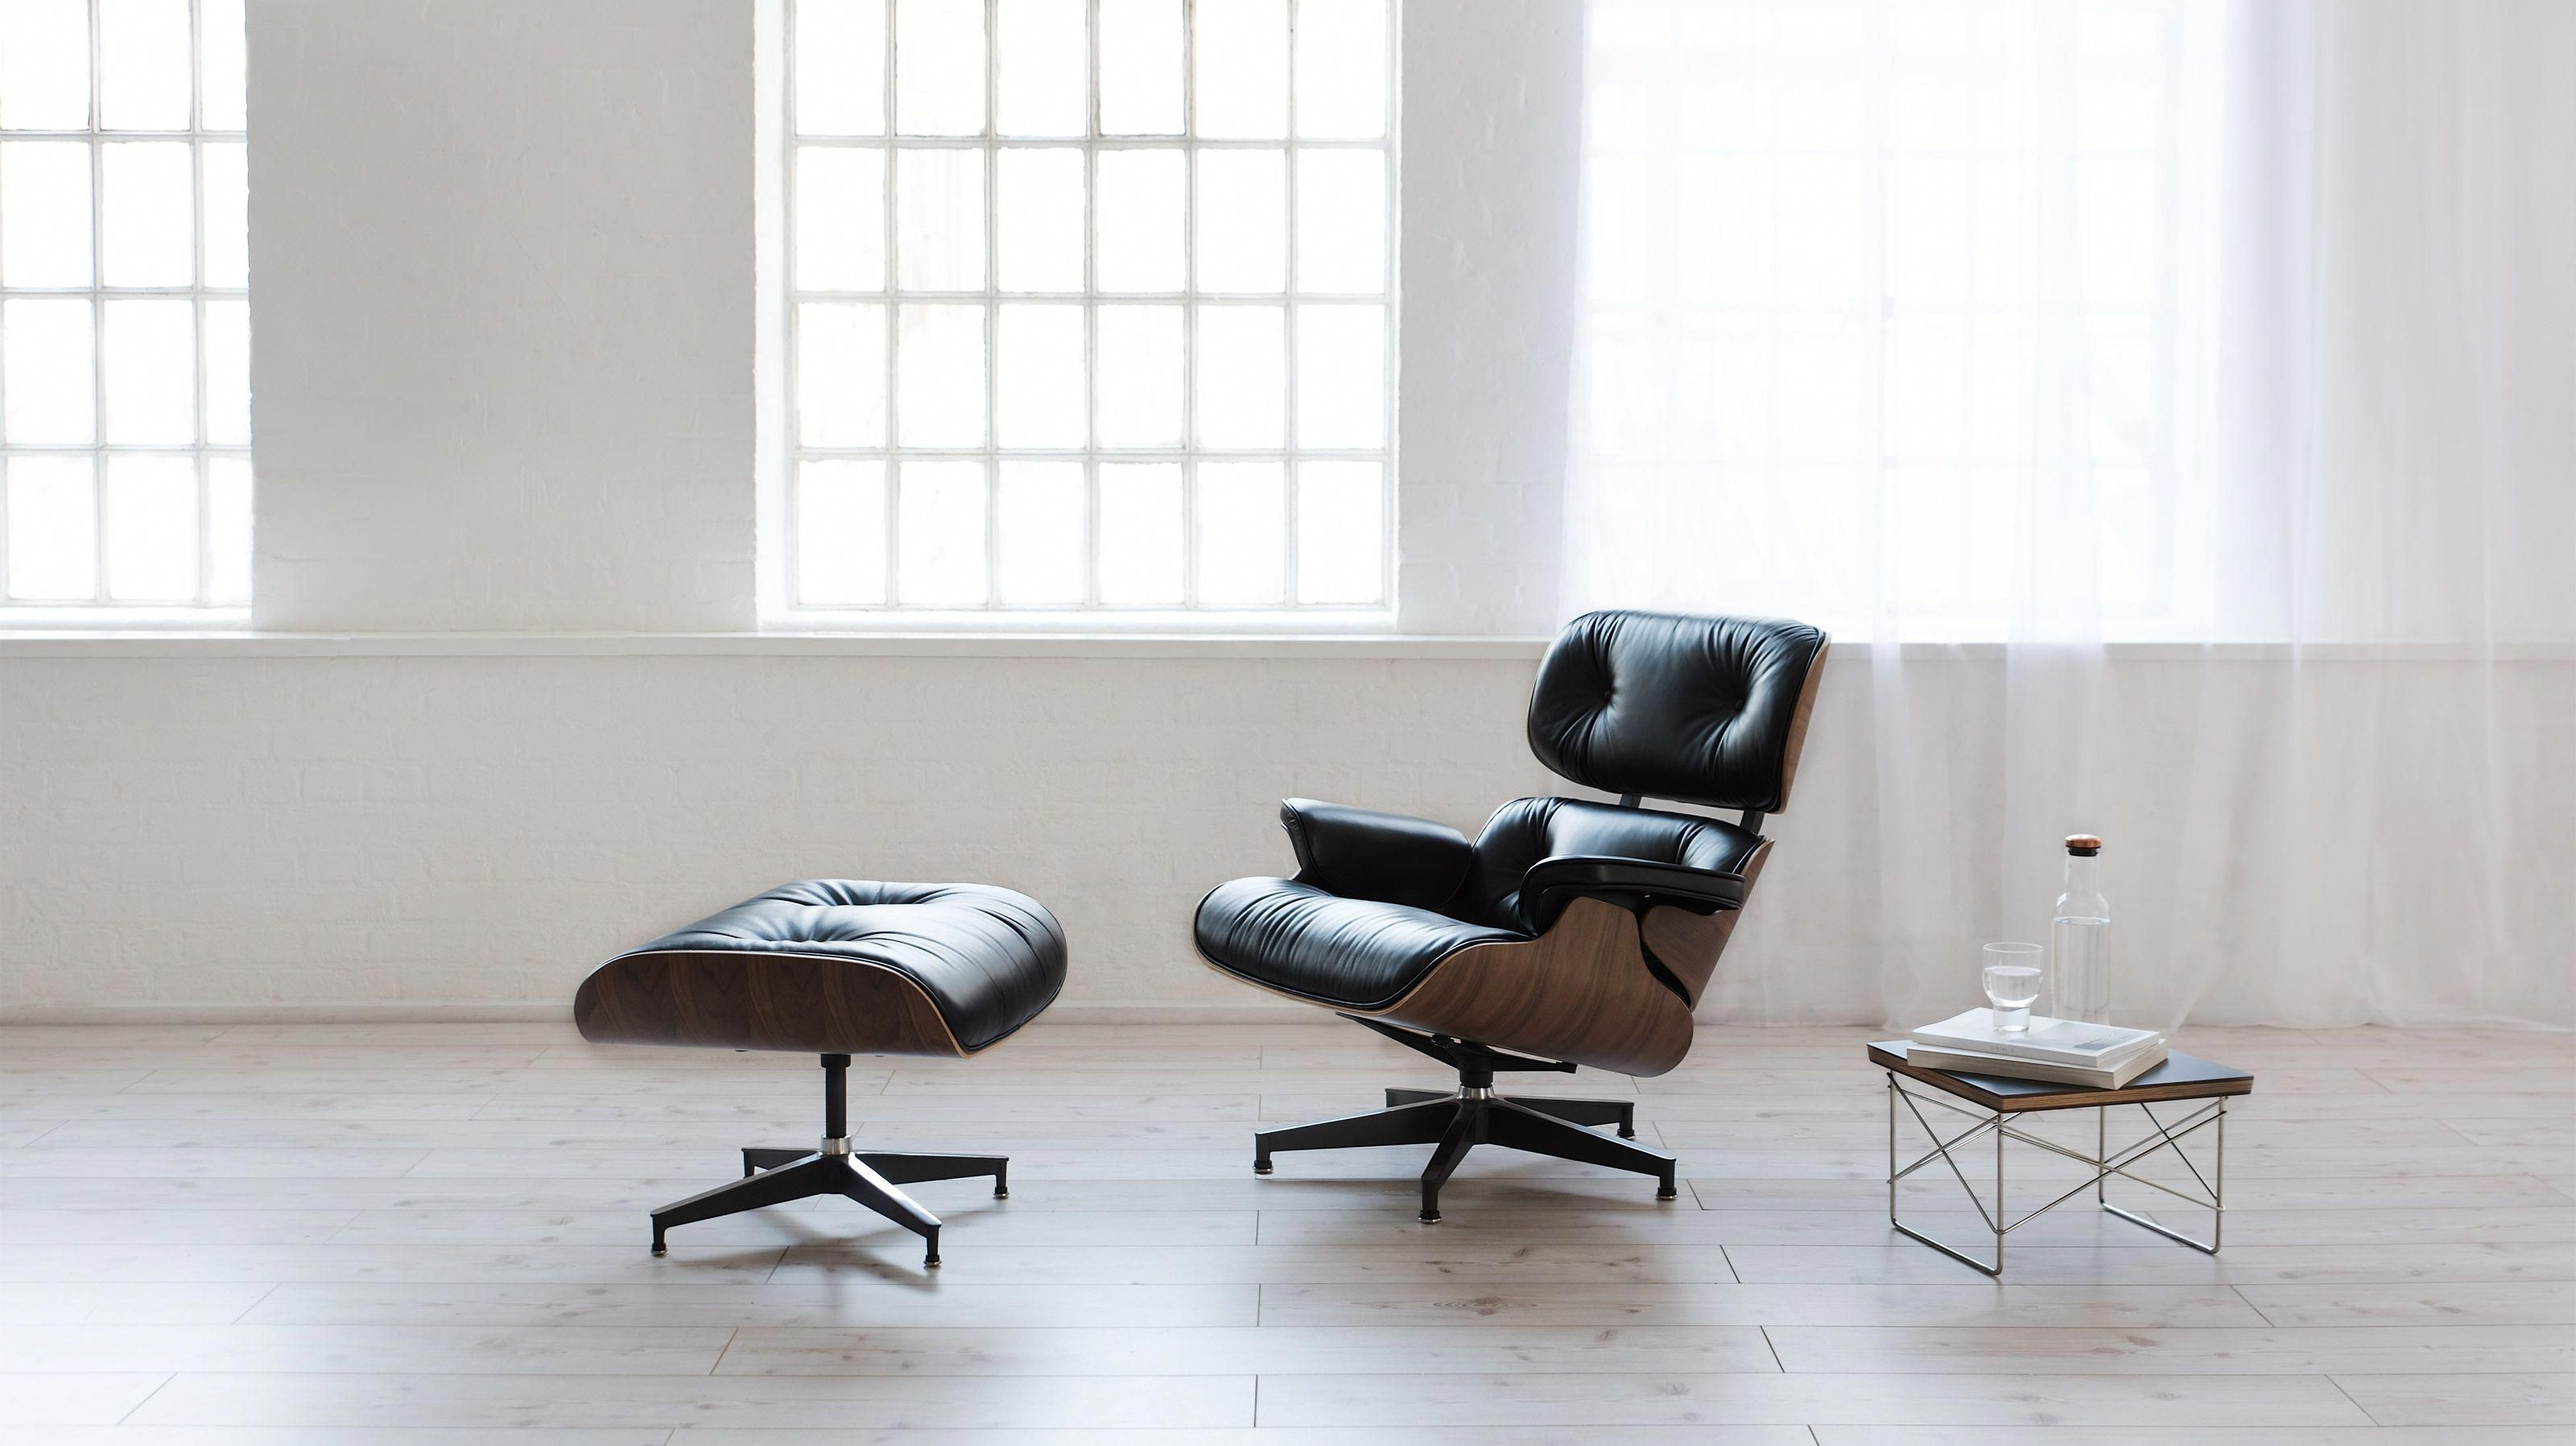 Eames lounge chair replica #wombchair | Composite Adirondack Chairs ...